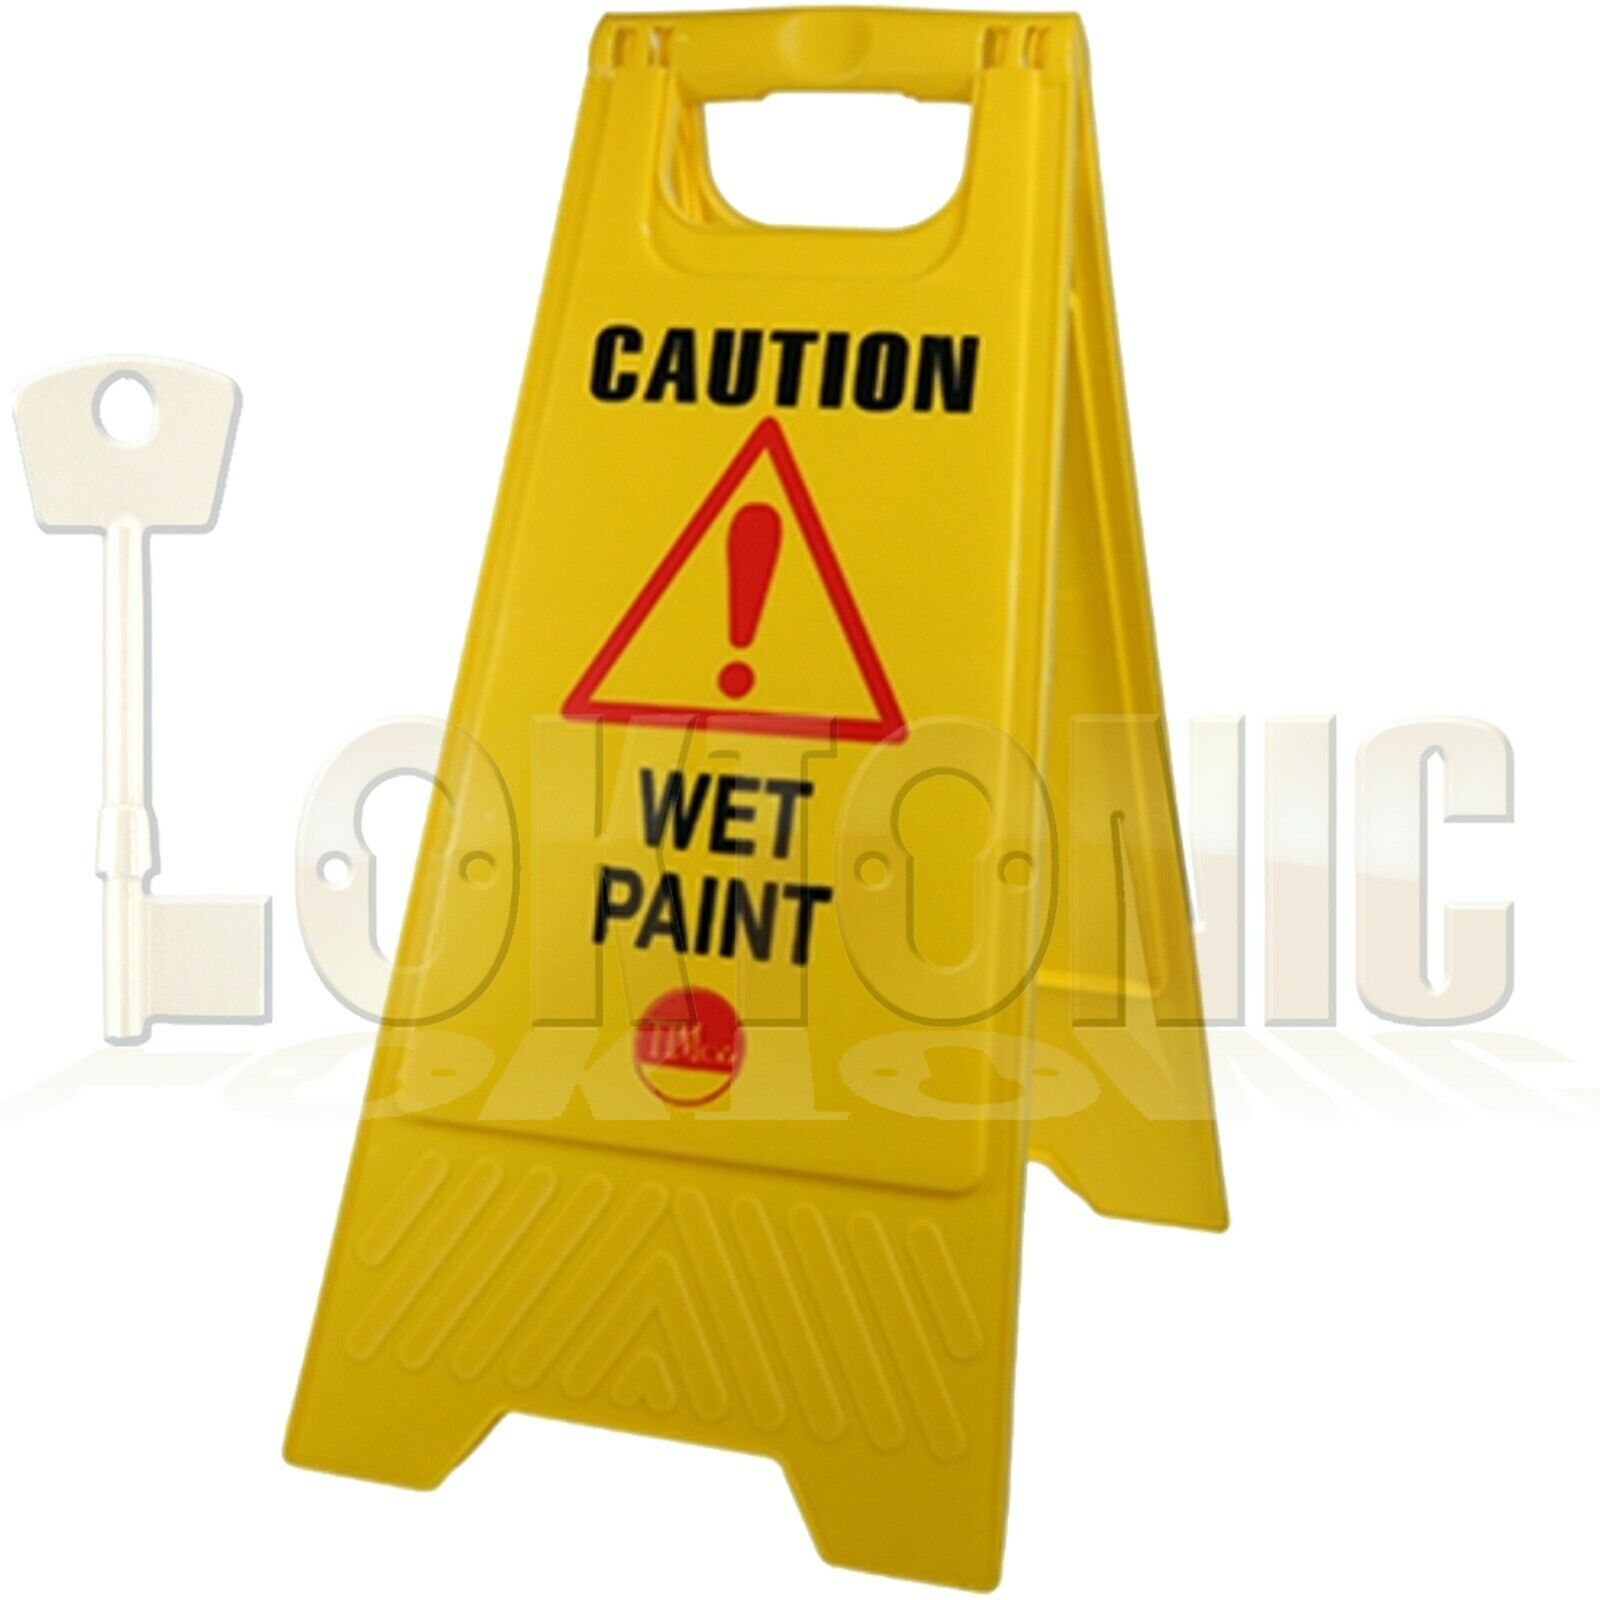 Professional Caution Shield A-Frame Safety Warning Sign Wet Paint 610 x 300 x 30